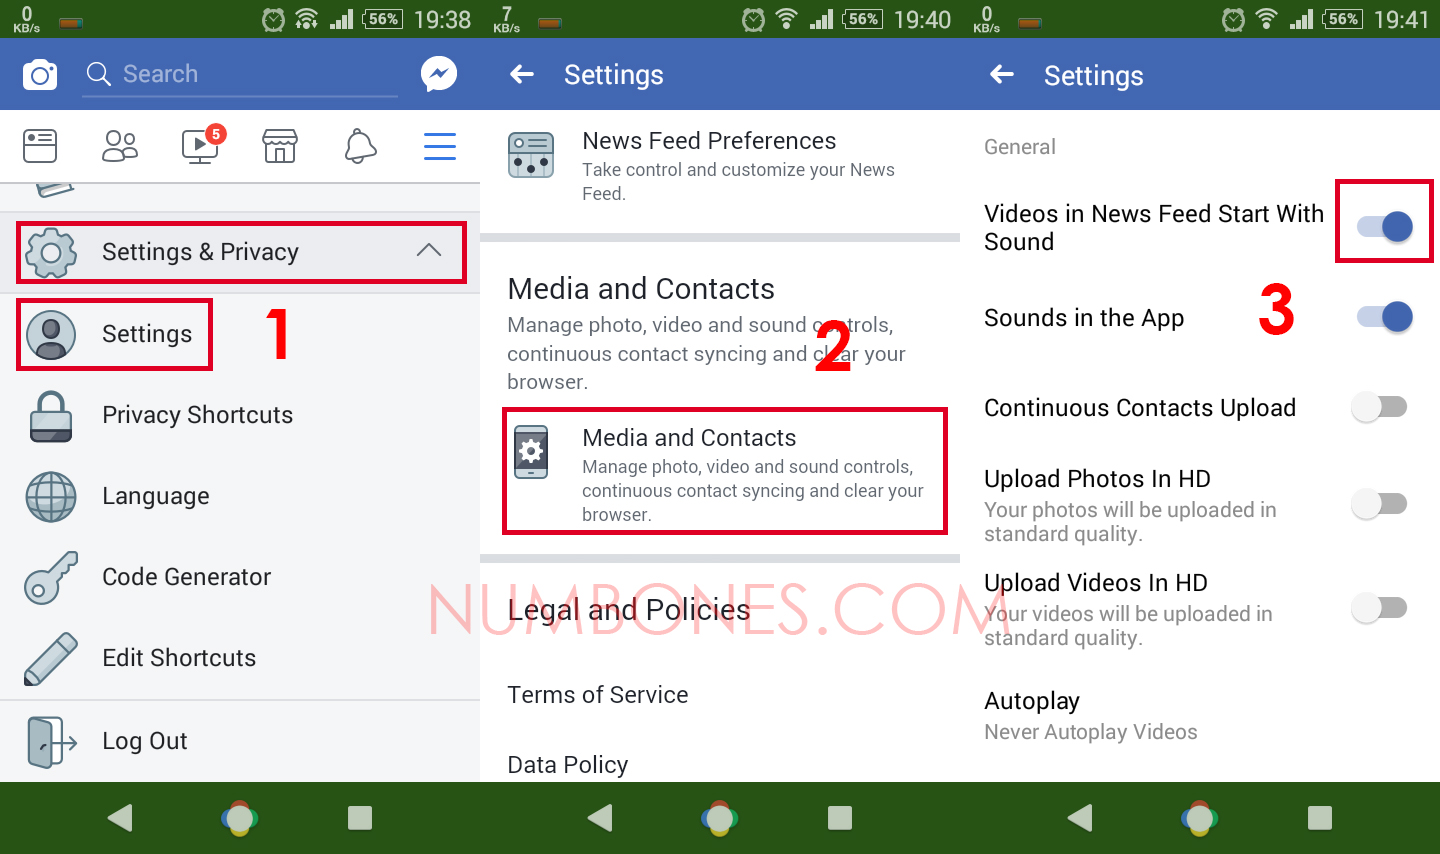 How to Turn Off (Disable) Facebook Video Autoplay on Android